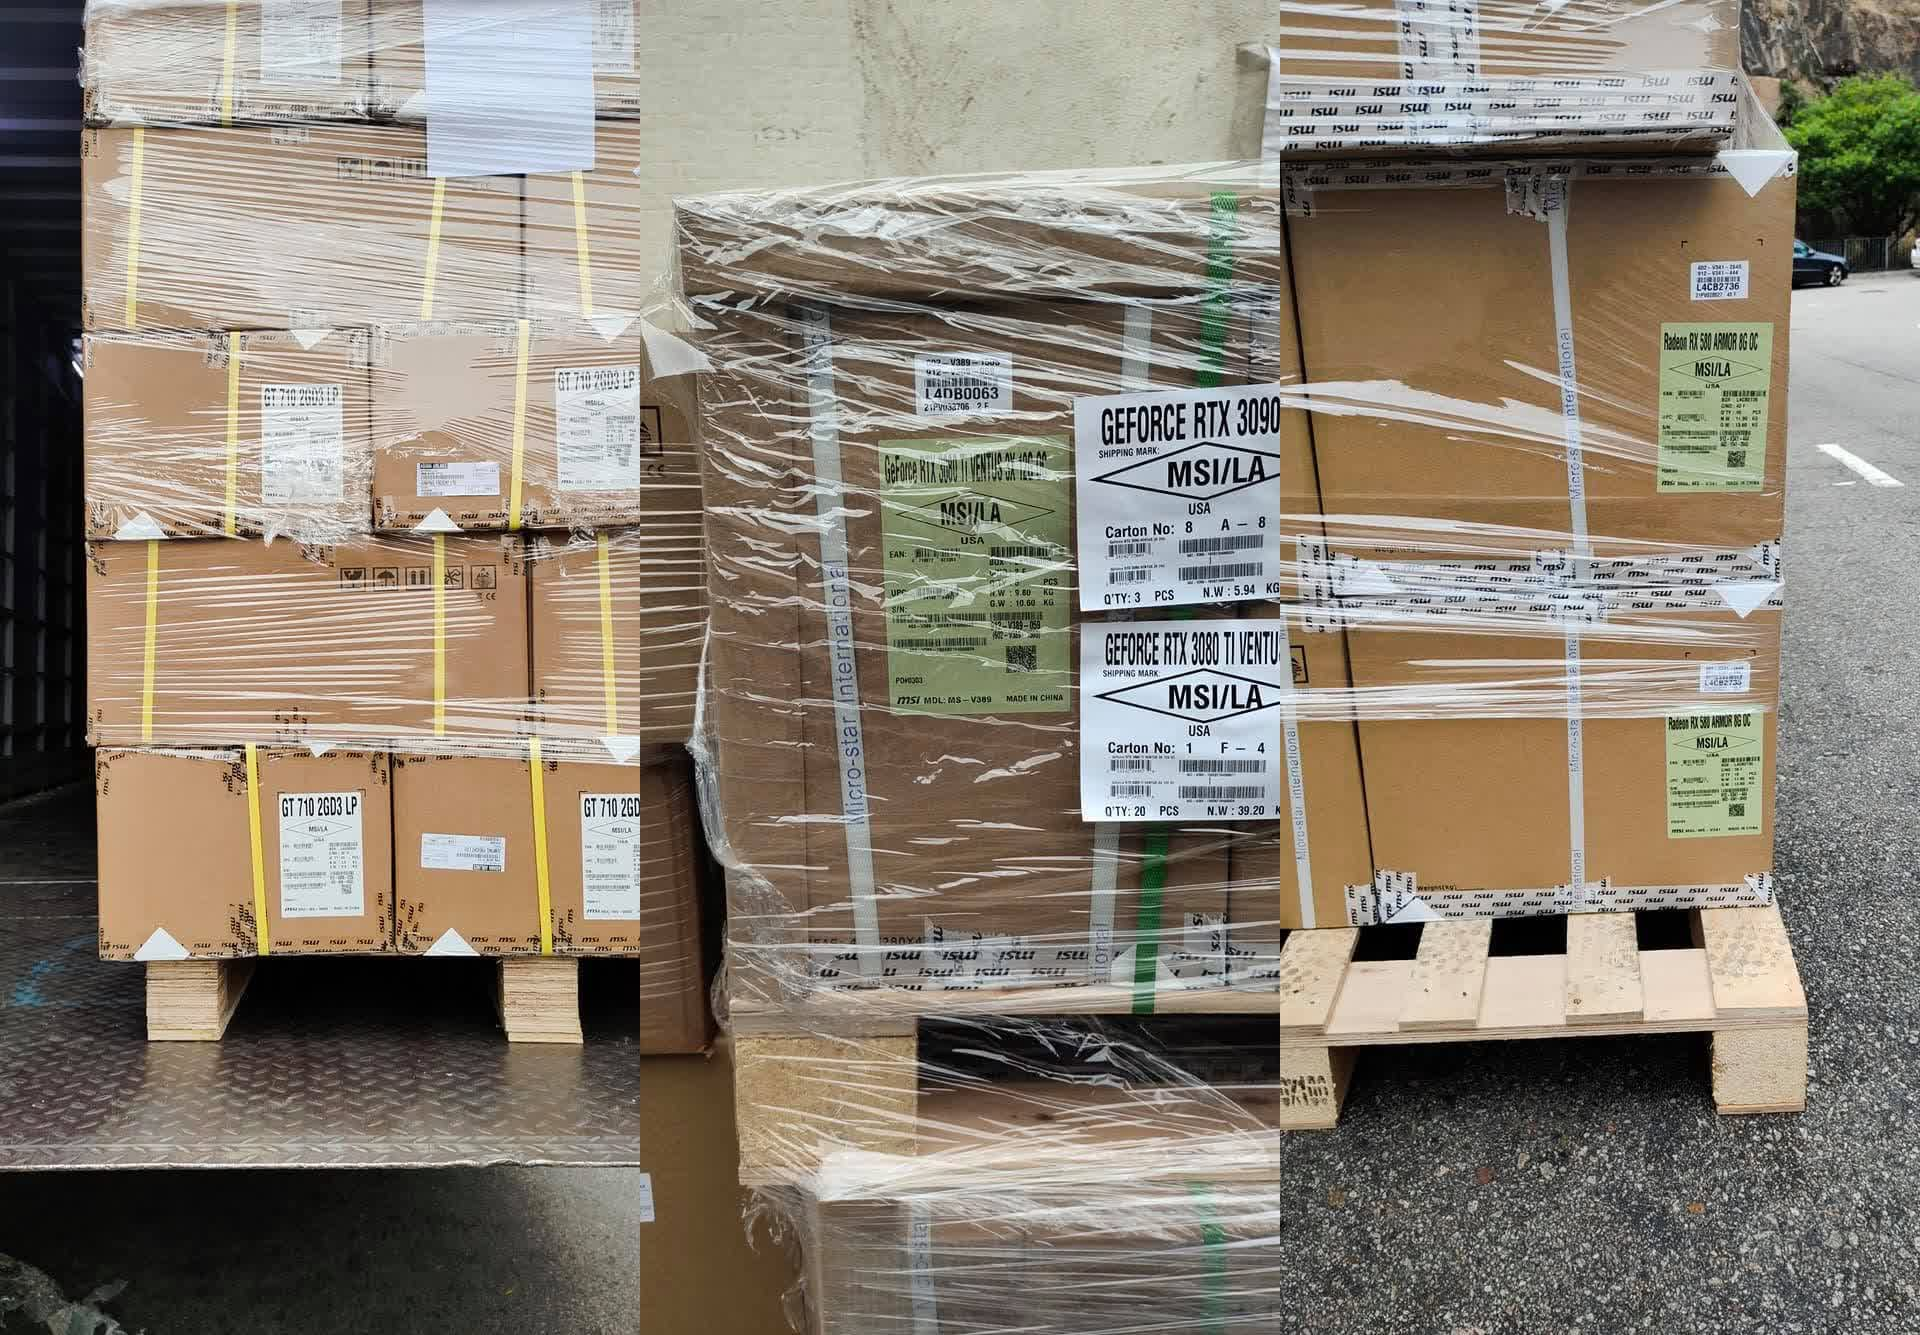 Boxes of RTX 3080 Ti 12GB GPUs have been photographed on their way to LA